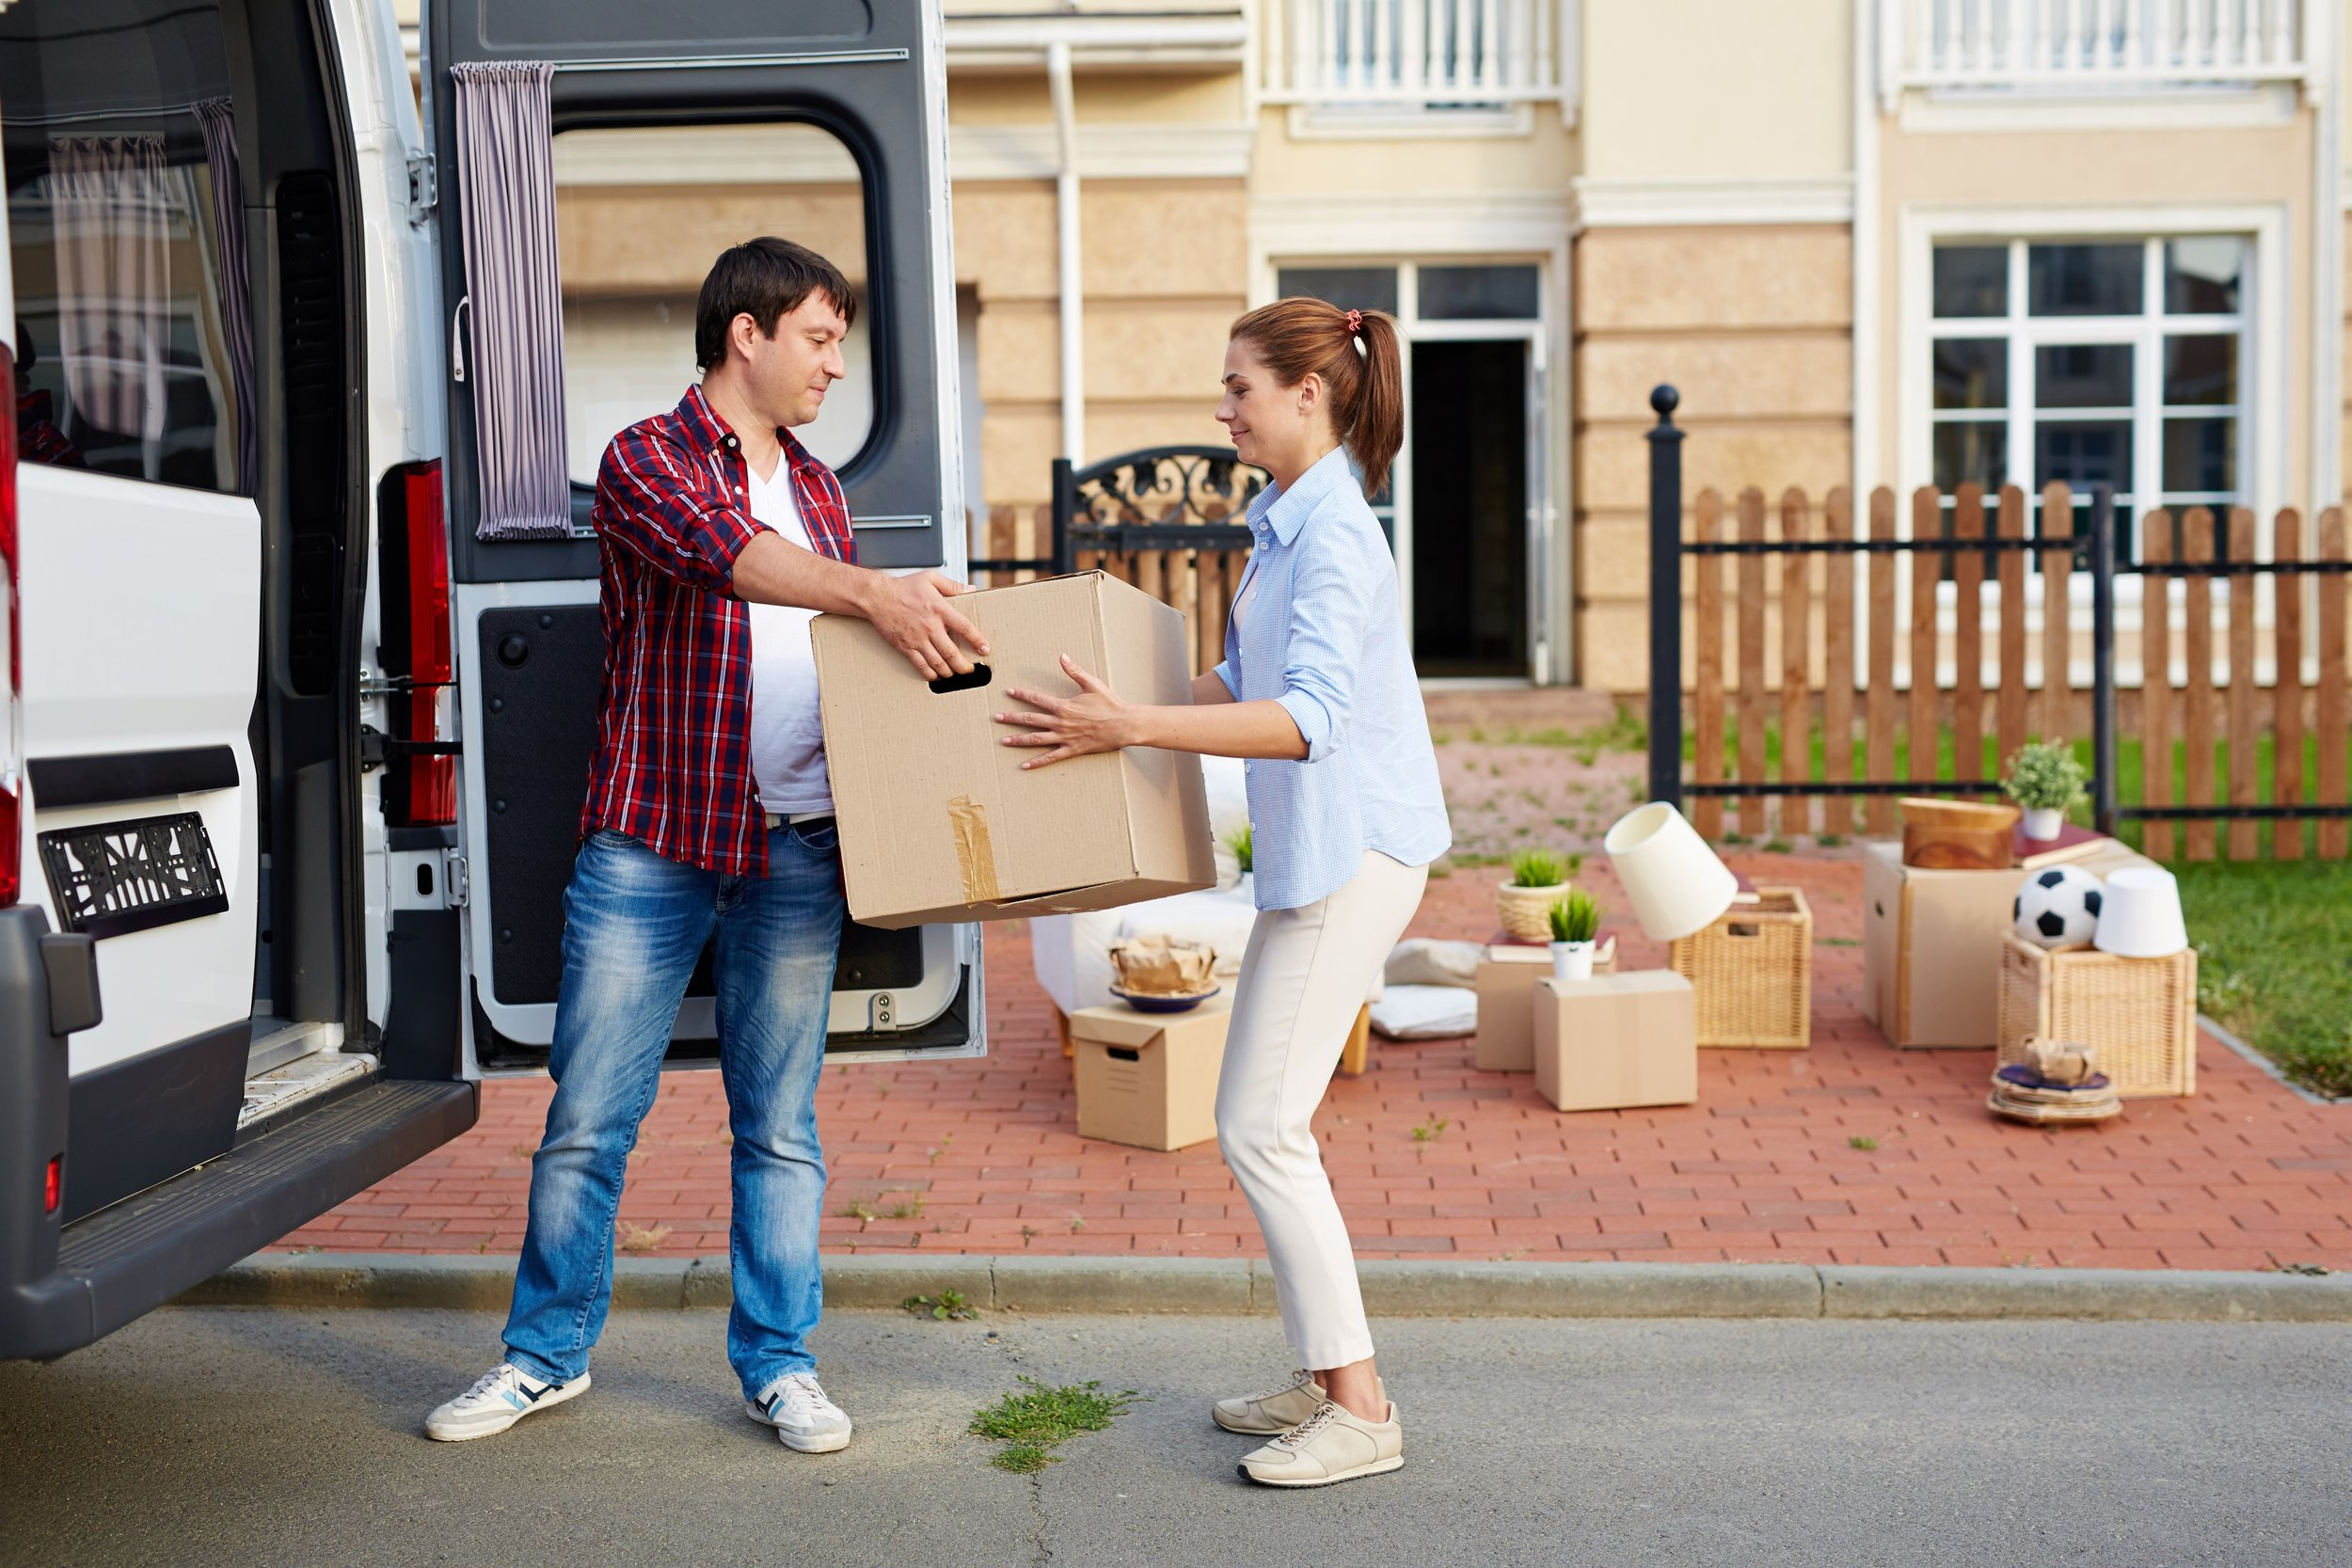 storyblocks-portrait-of-man-taking-cardboard-boxes-out-of-moving-van-and-passing-them-to-his-wife-in-front-of-new-house_B3-7ourJkz-sm.jpg